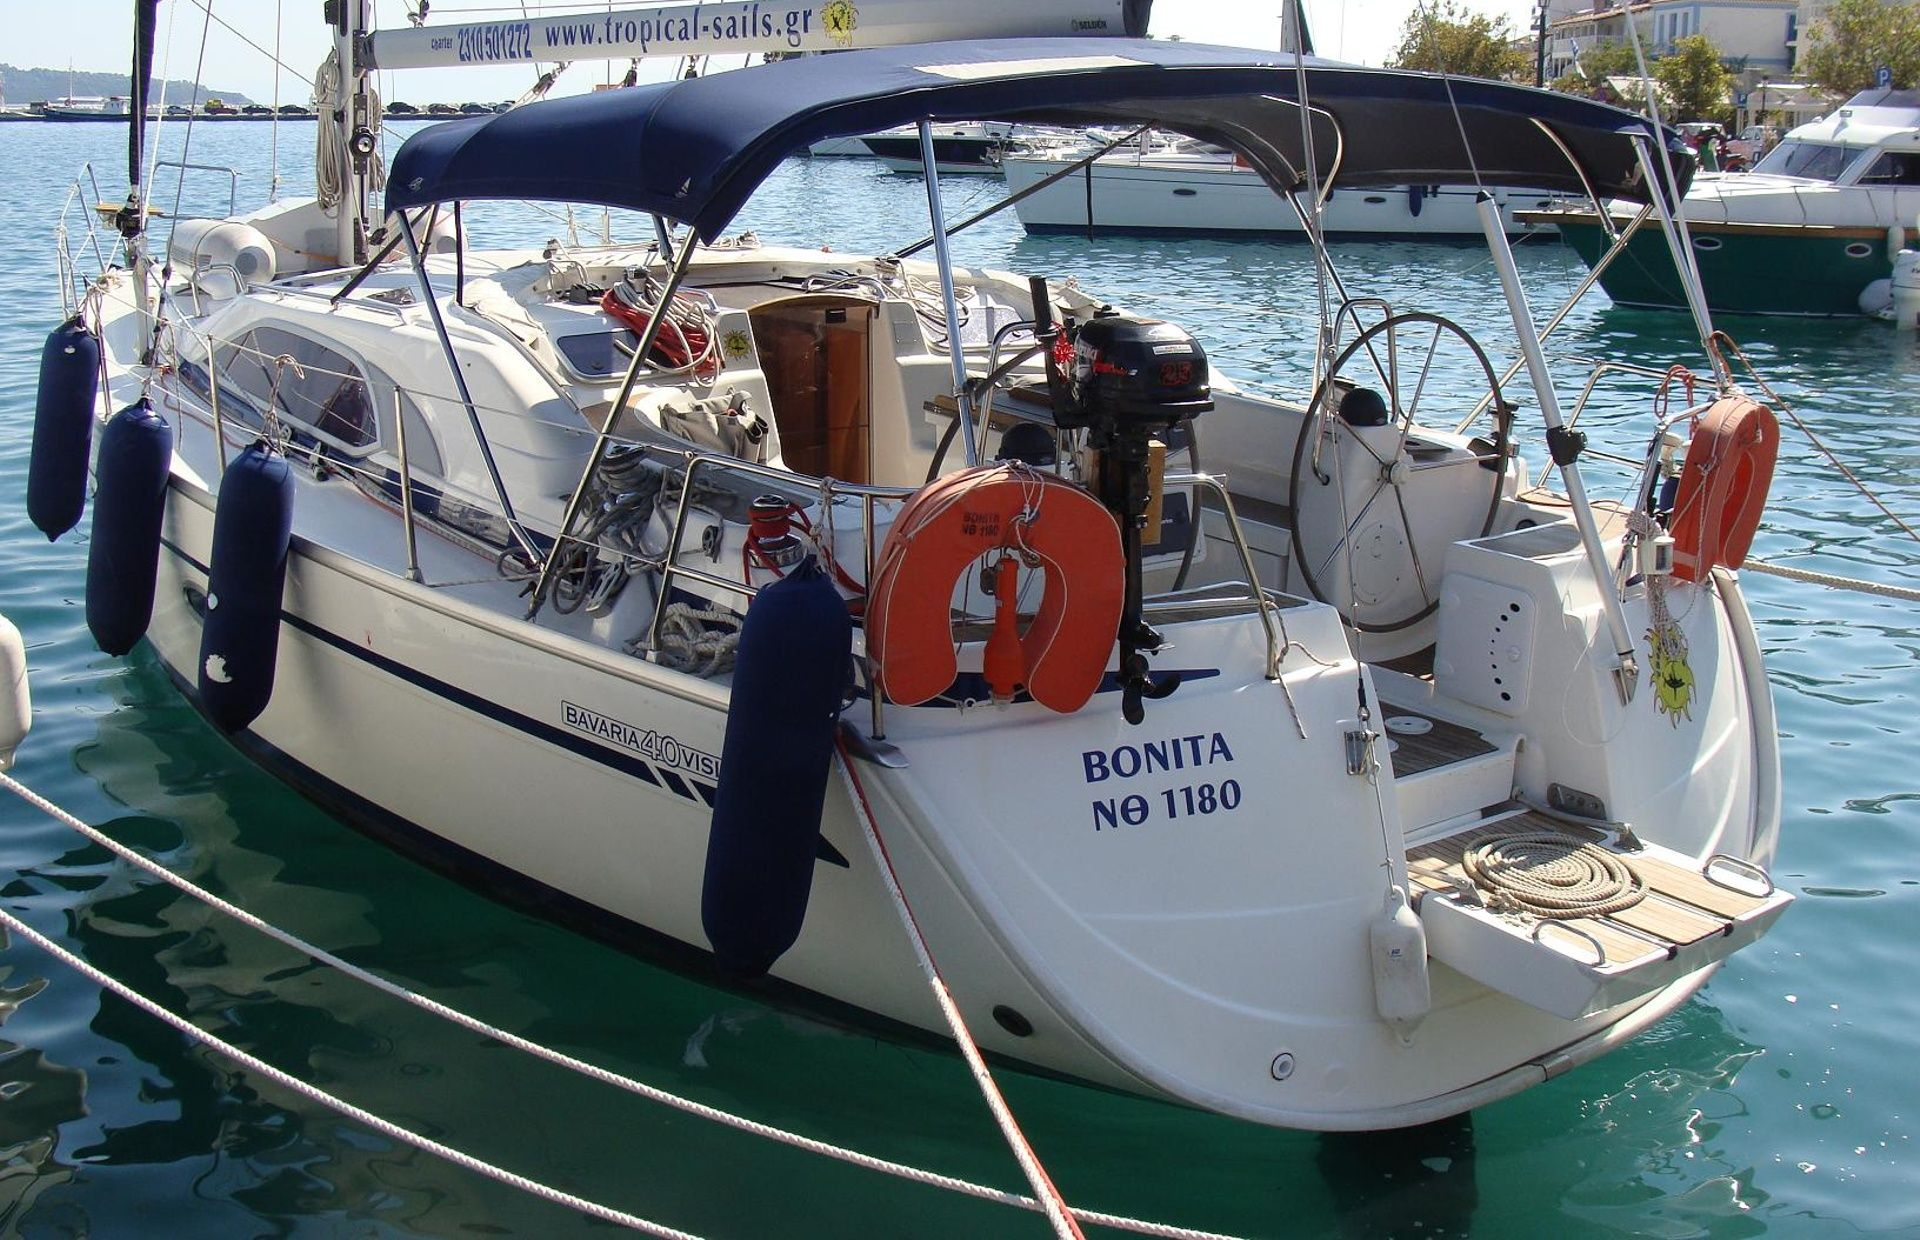 https://media.insailing.com/boat/bonita/image_1570089346878.jpg